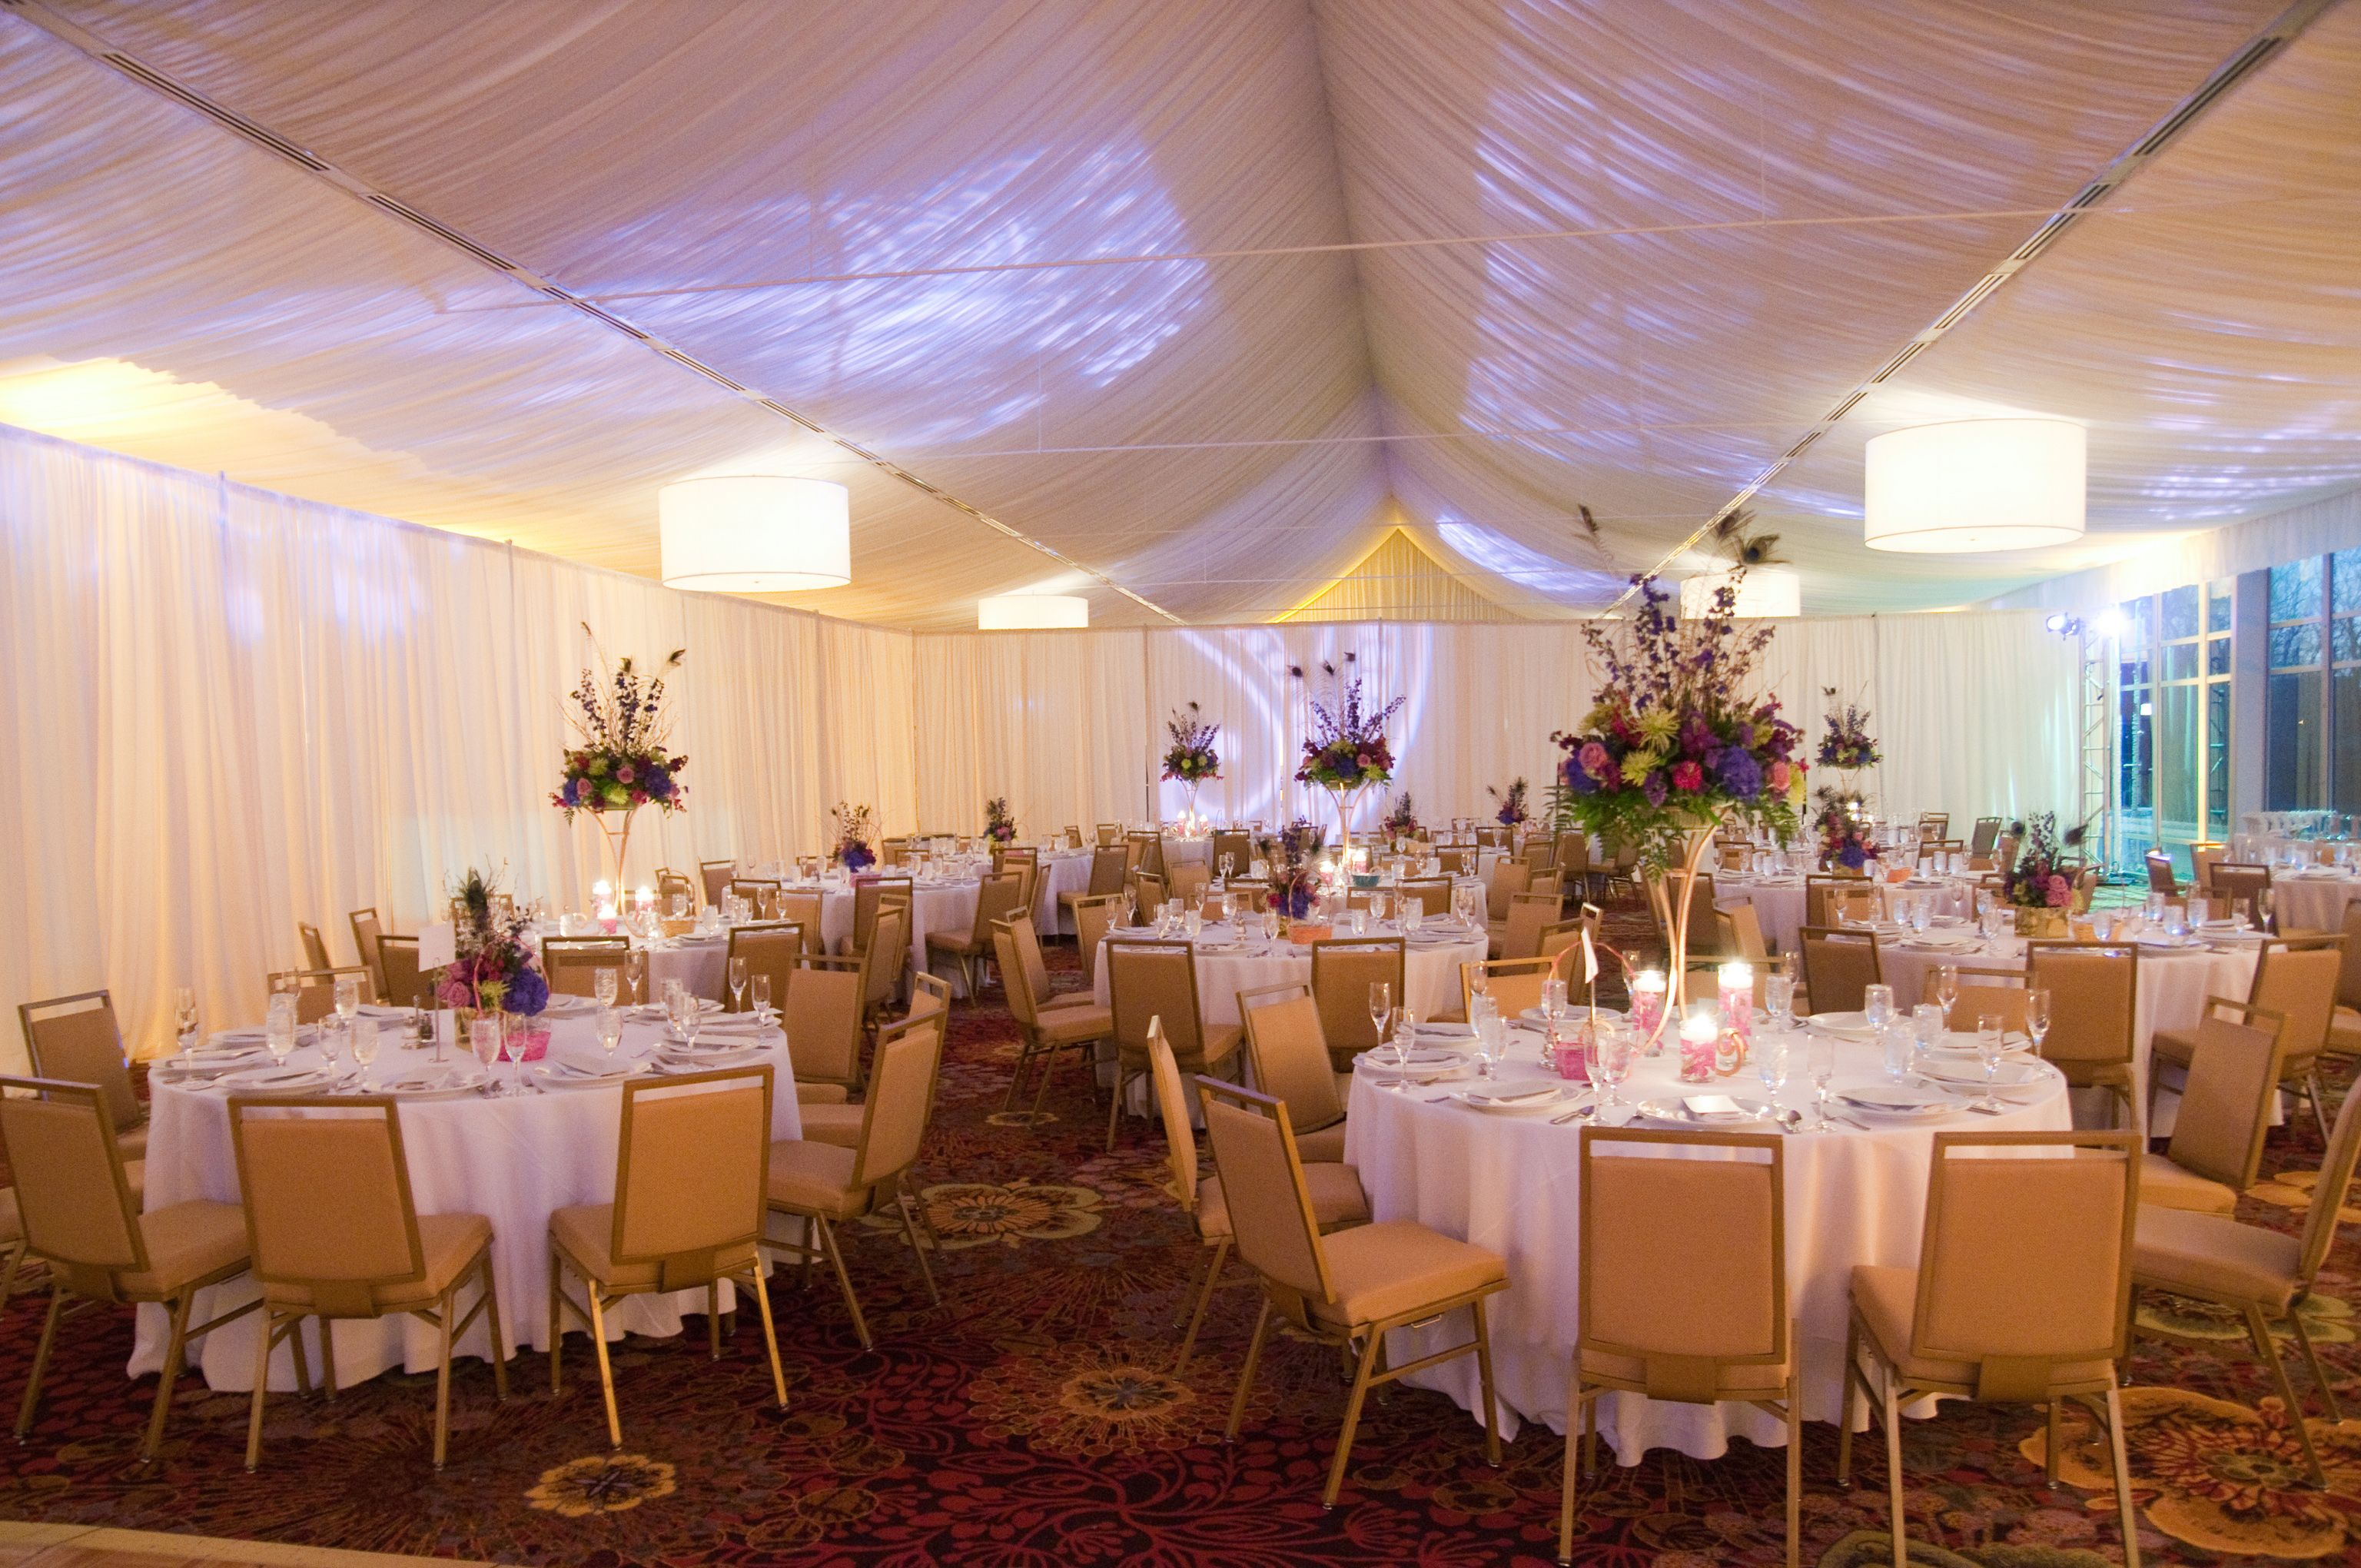 A Romantic Glow In The Lincolnshire Marriott Resorts Grand Marquee Pavilion Weddings